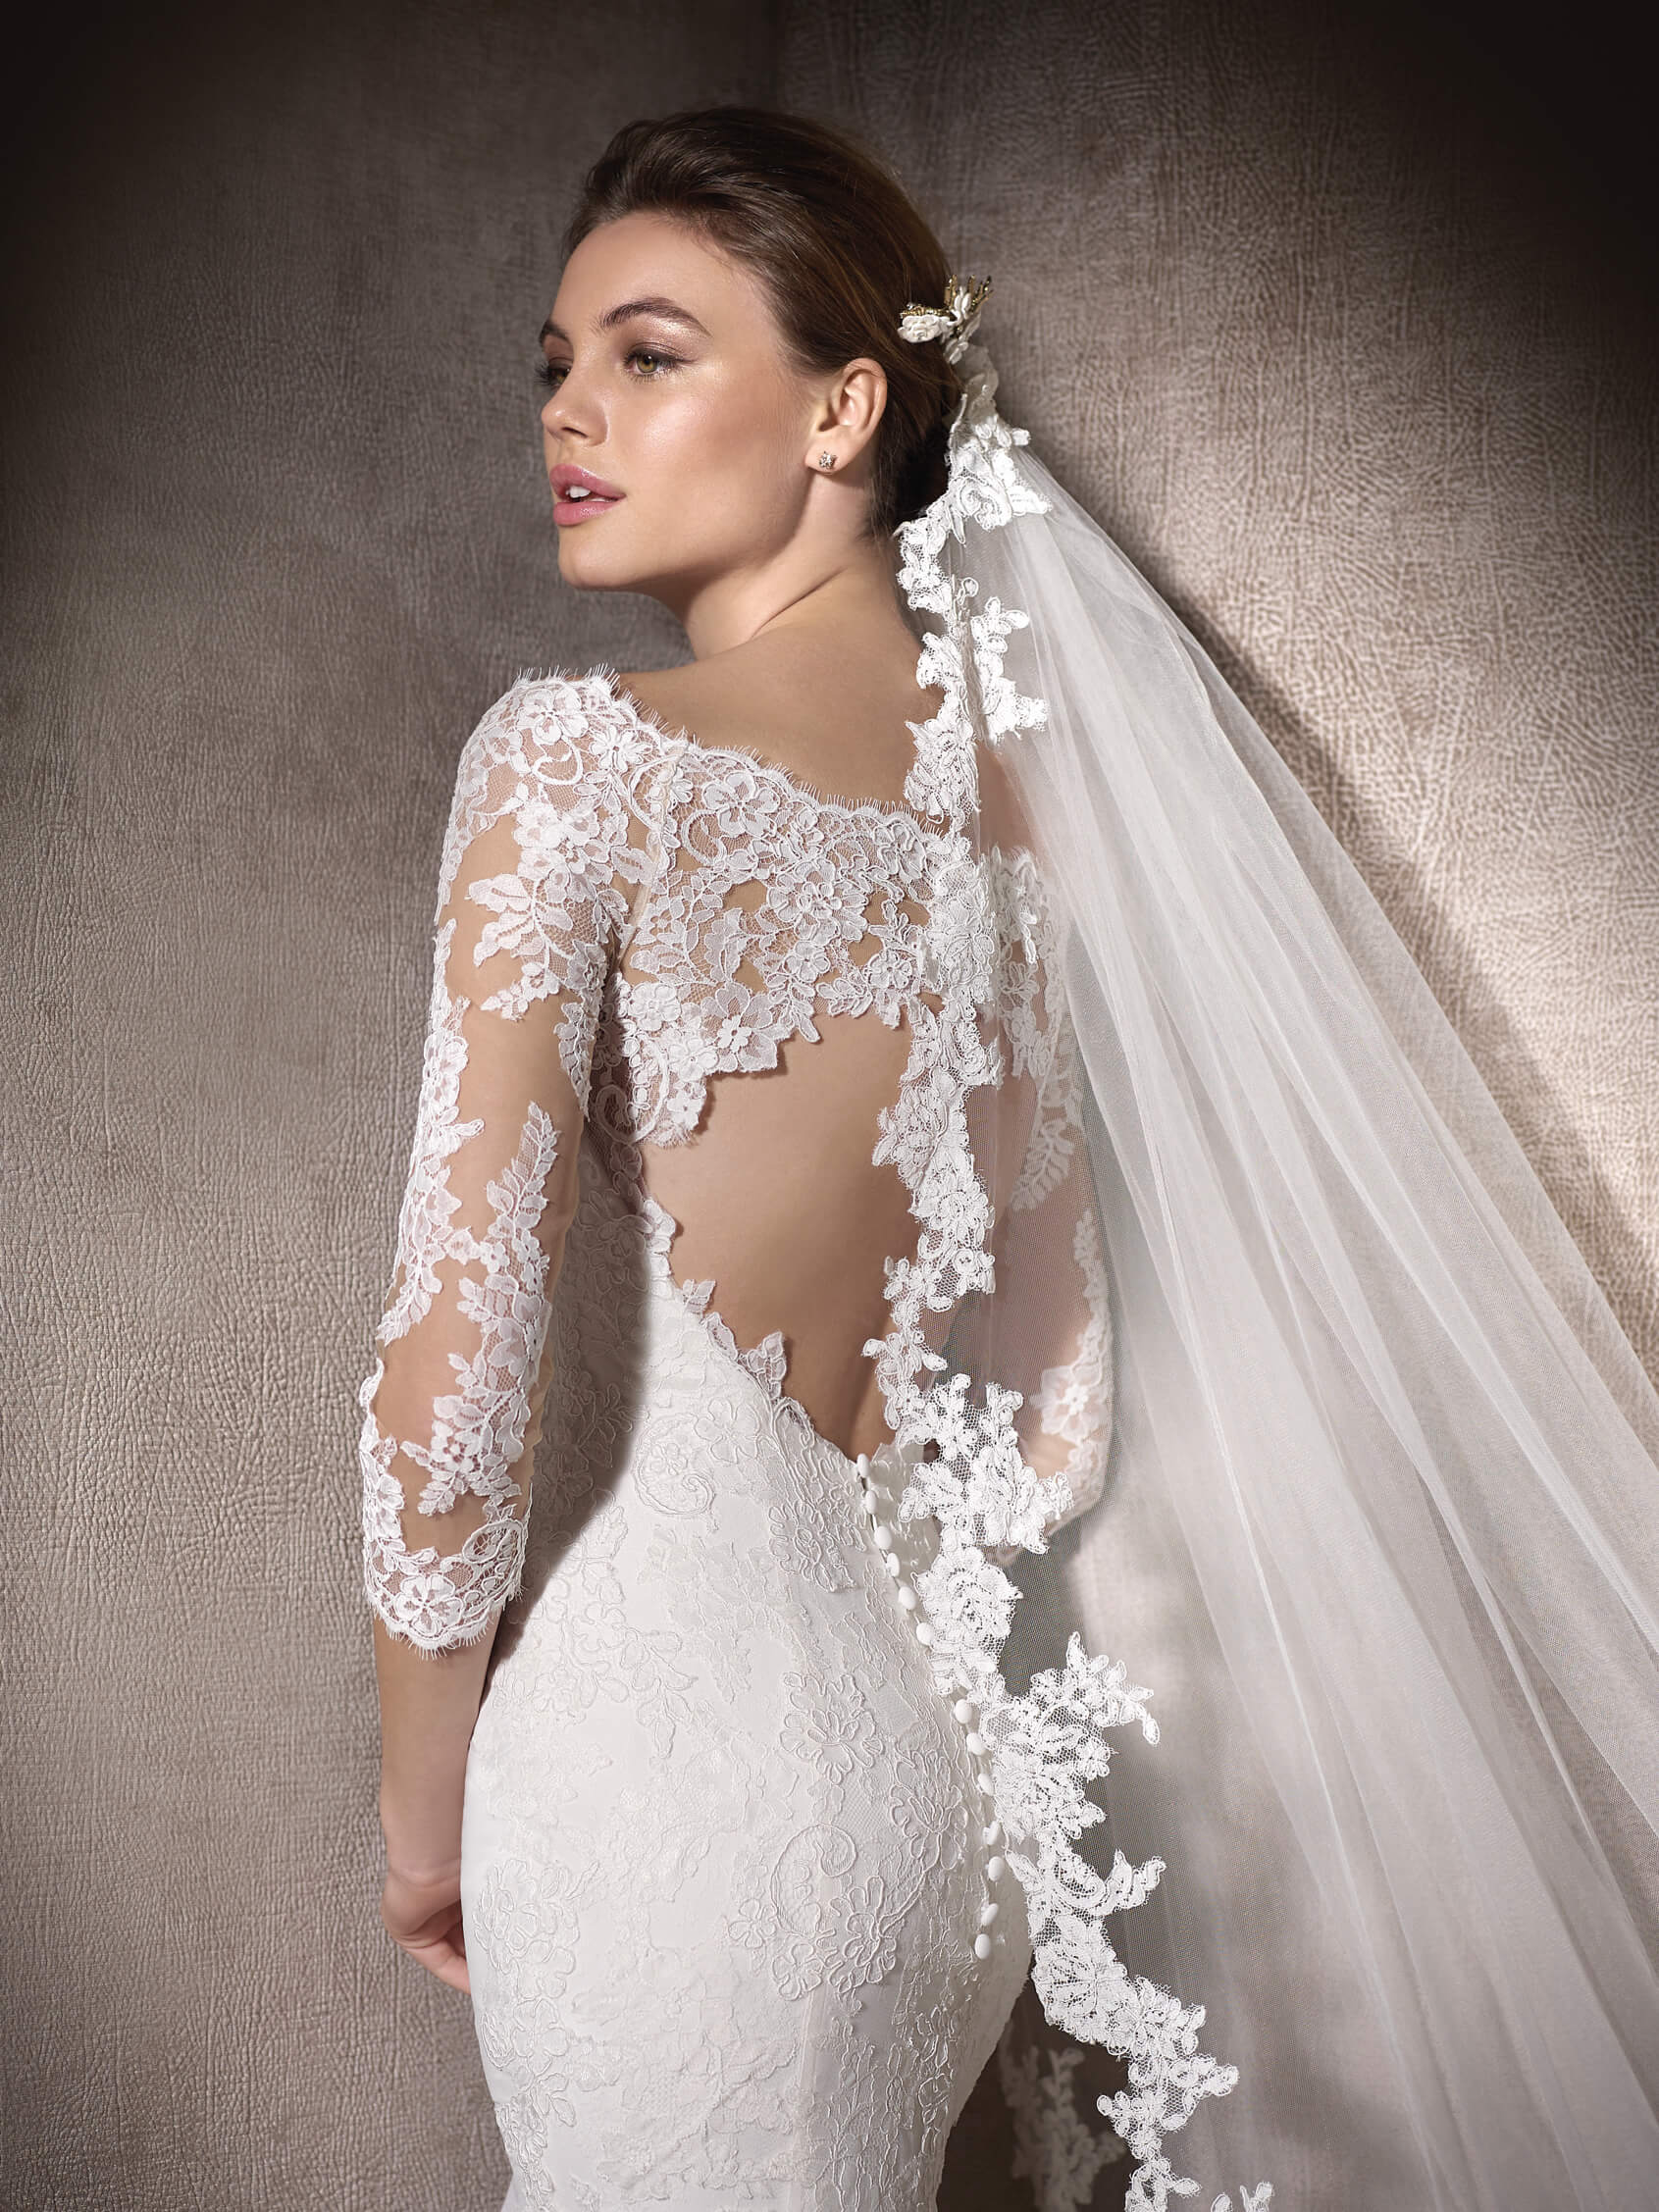 WEDDING RECOMMENDATIONS